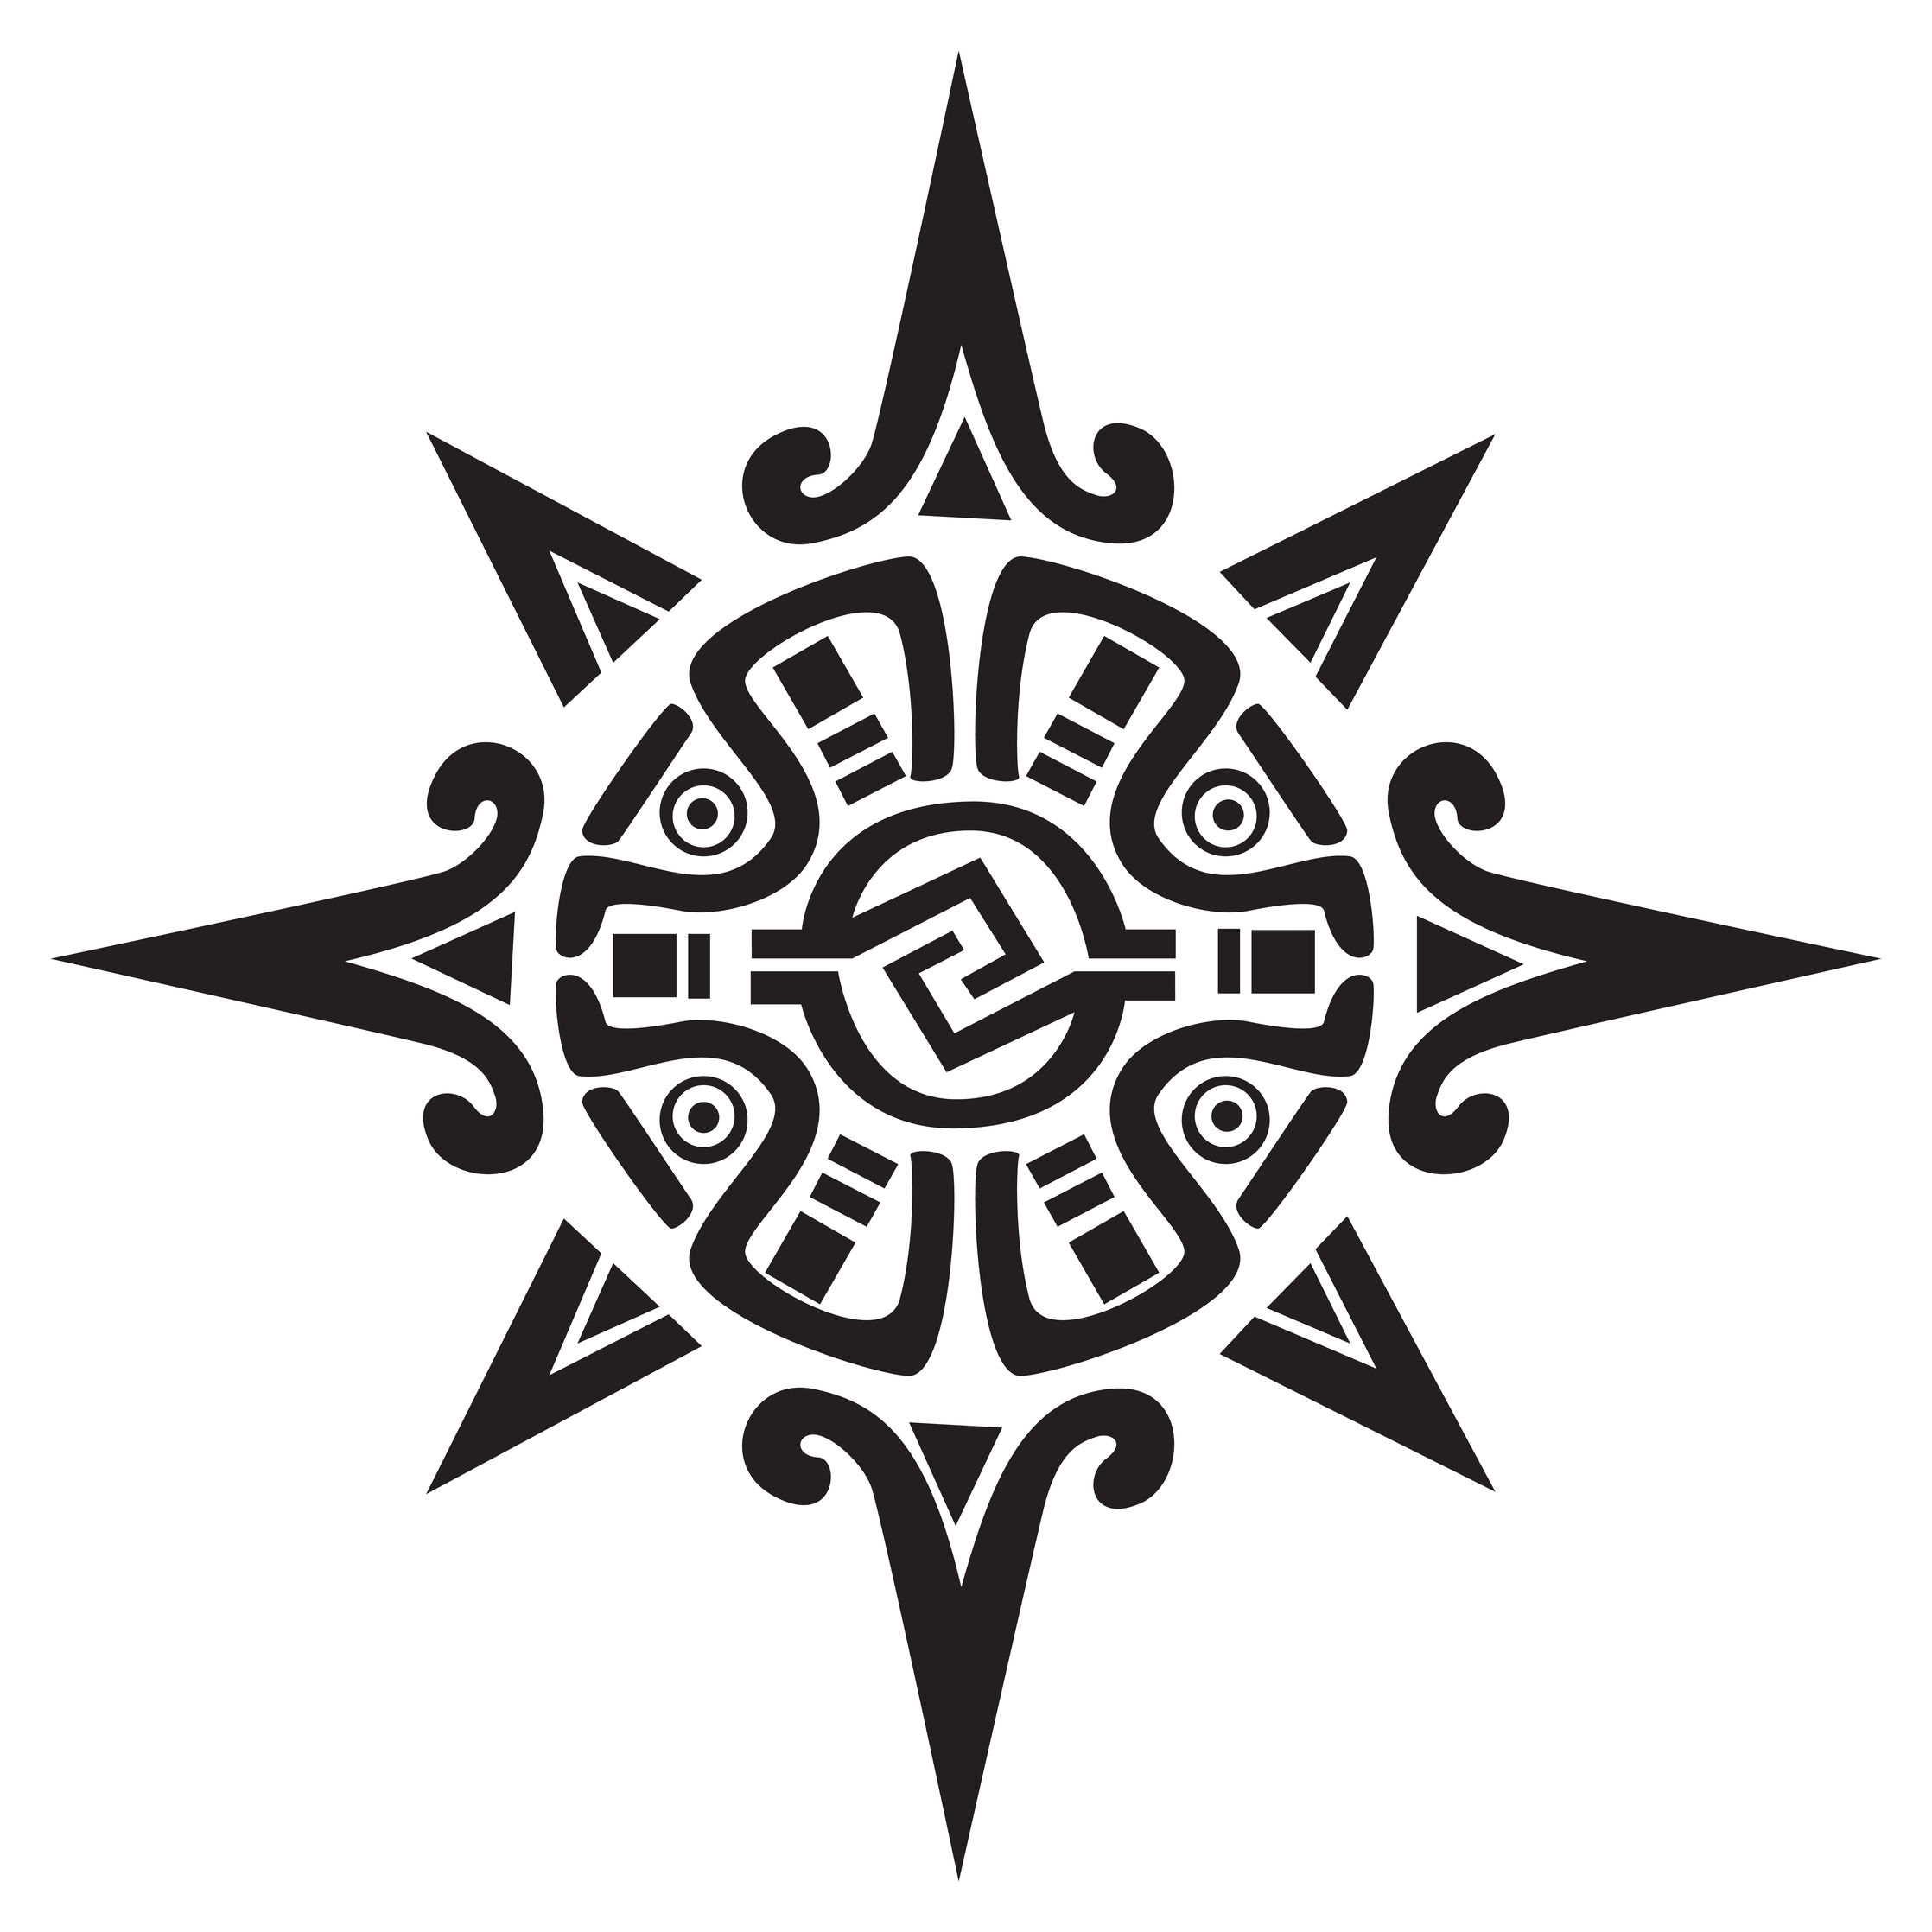 12 Tribal Sun Tattoos – Meanings And Symbols | Images ...